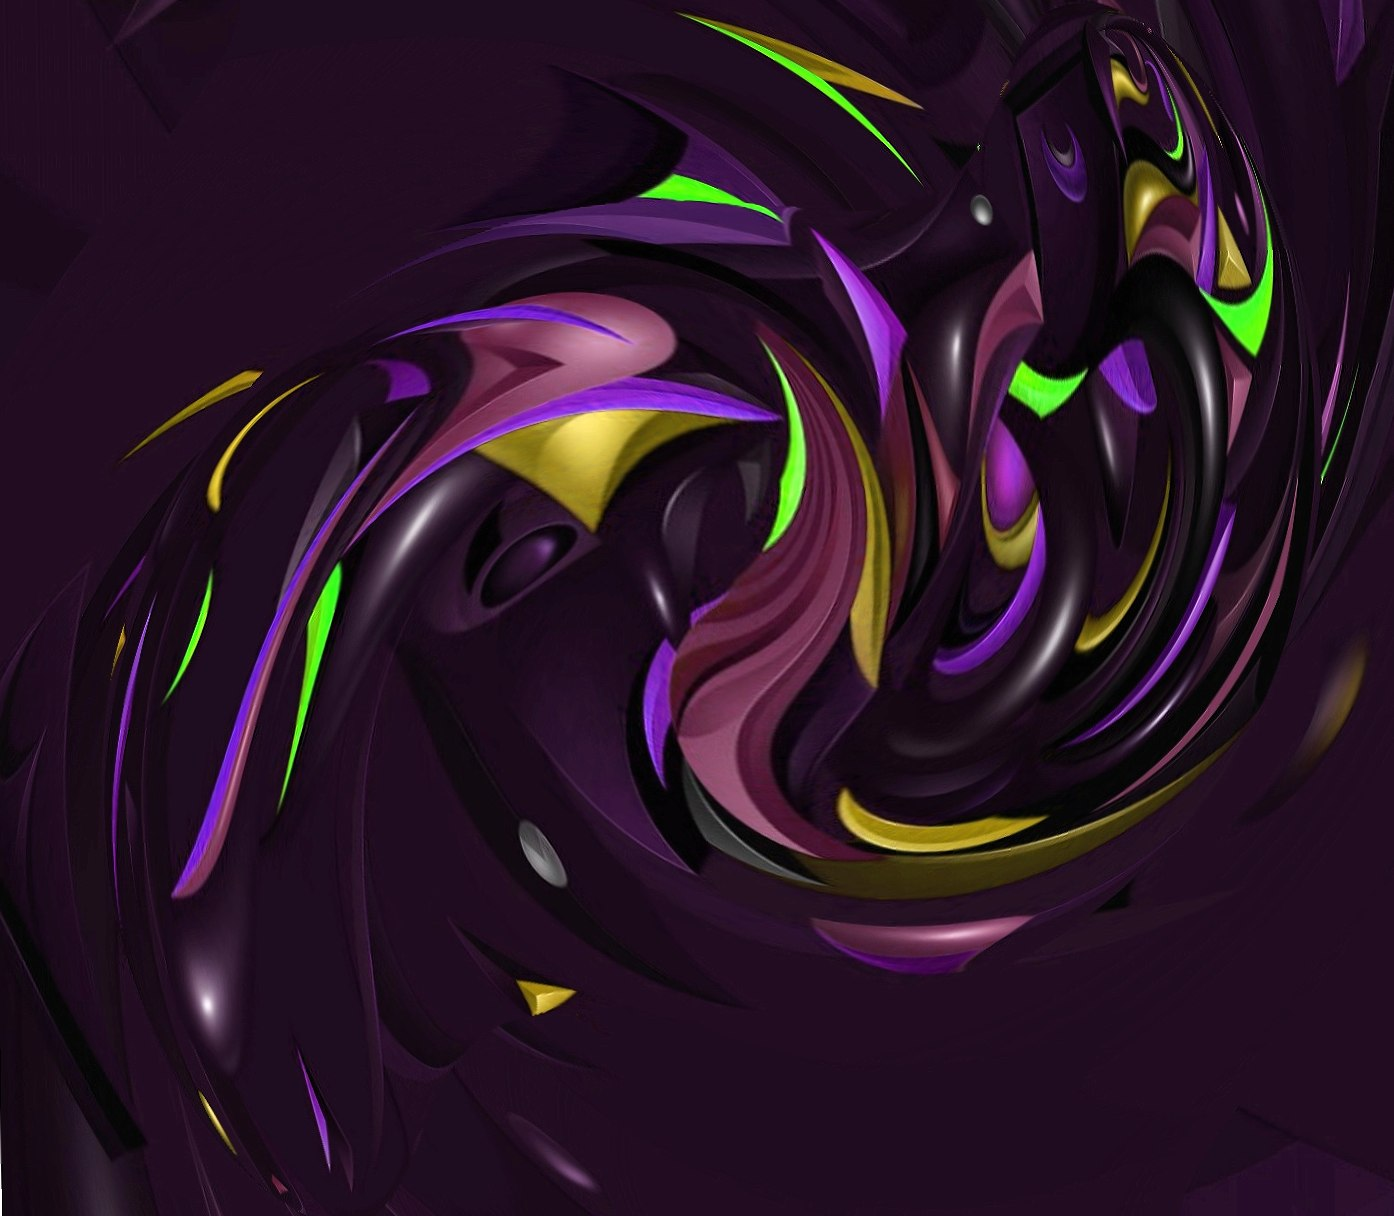 Abstractpurple wallpapers HD quality